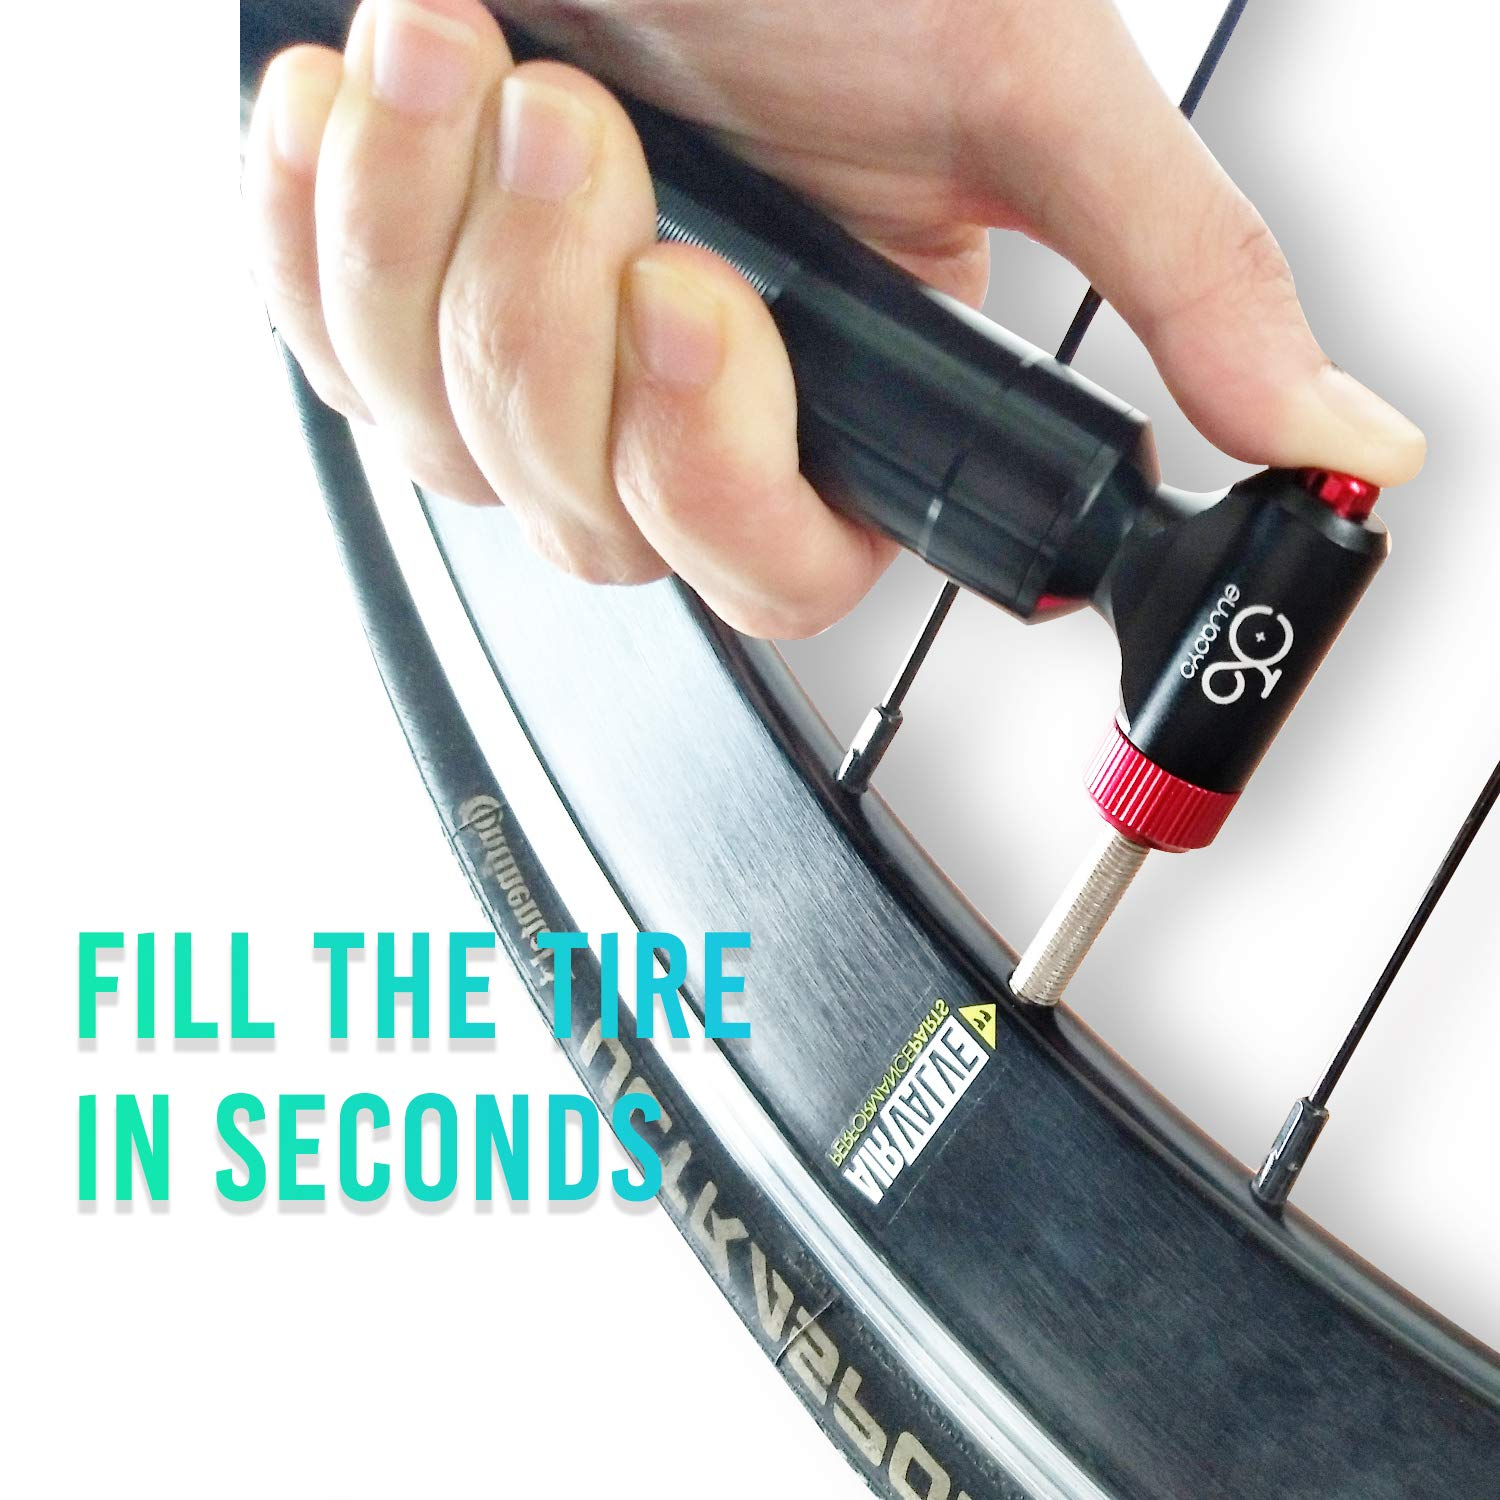 CYCPLUS CO2 Inflator with Cartridge Storage Canister Quick /& Easy Presta and Schrader Valve Compatible Bicycle Tire Pump for Road and Mountain Bikes No CO2 Cartridges Included A21